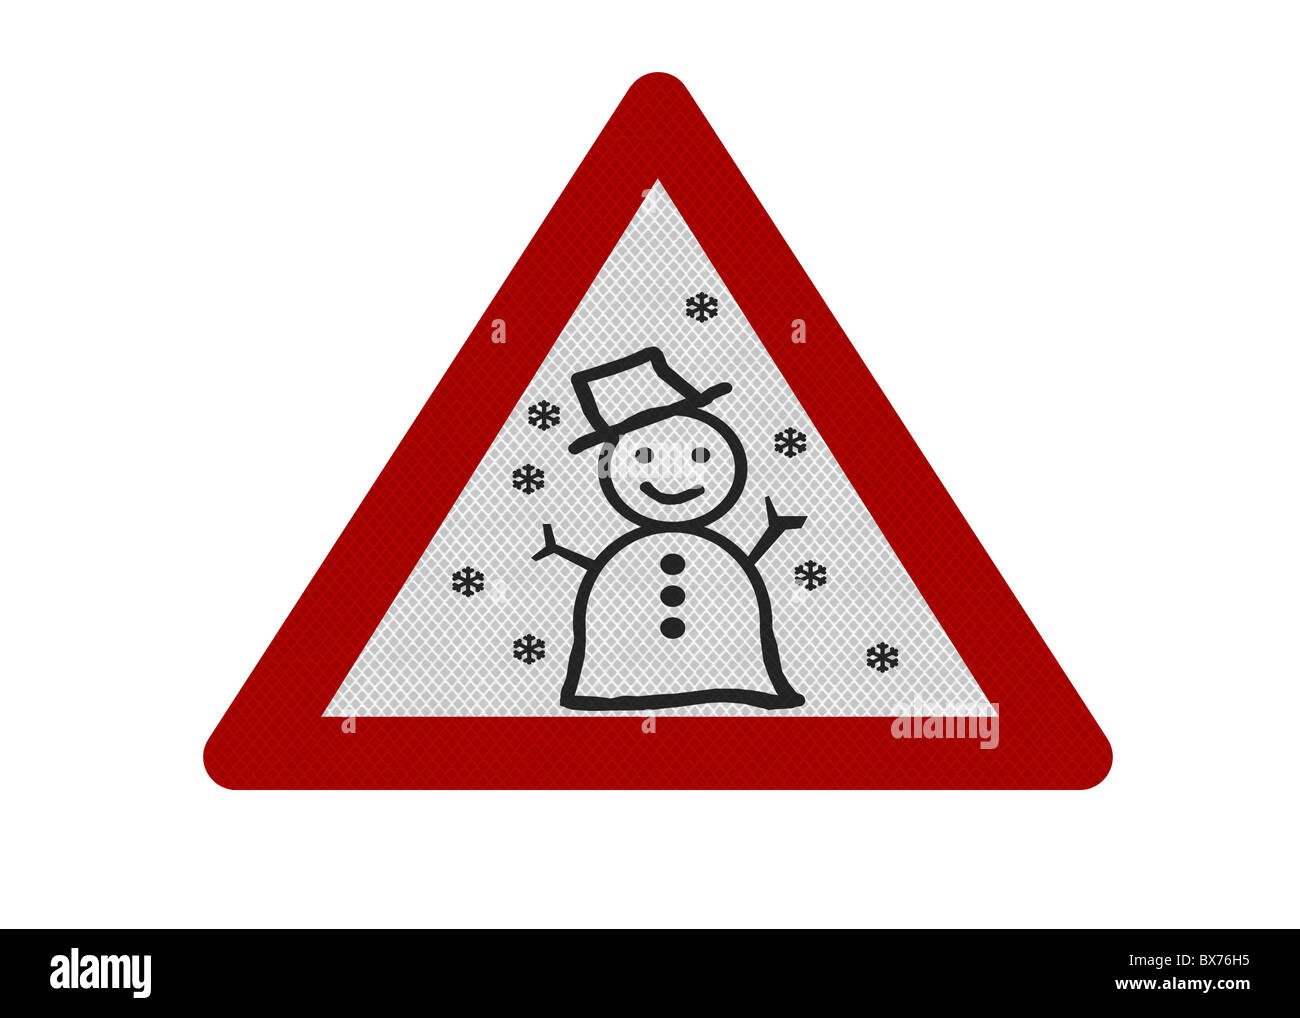 Photo realistic reflective metallic 'snow warning' sign, isolated on a pure white background. - Stock Image